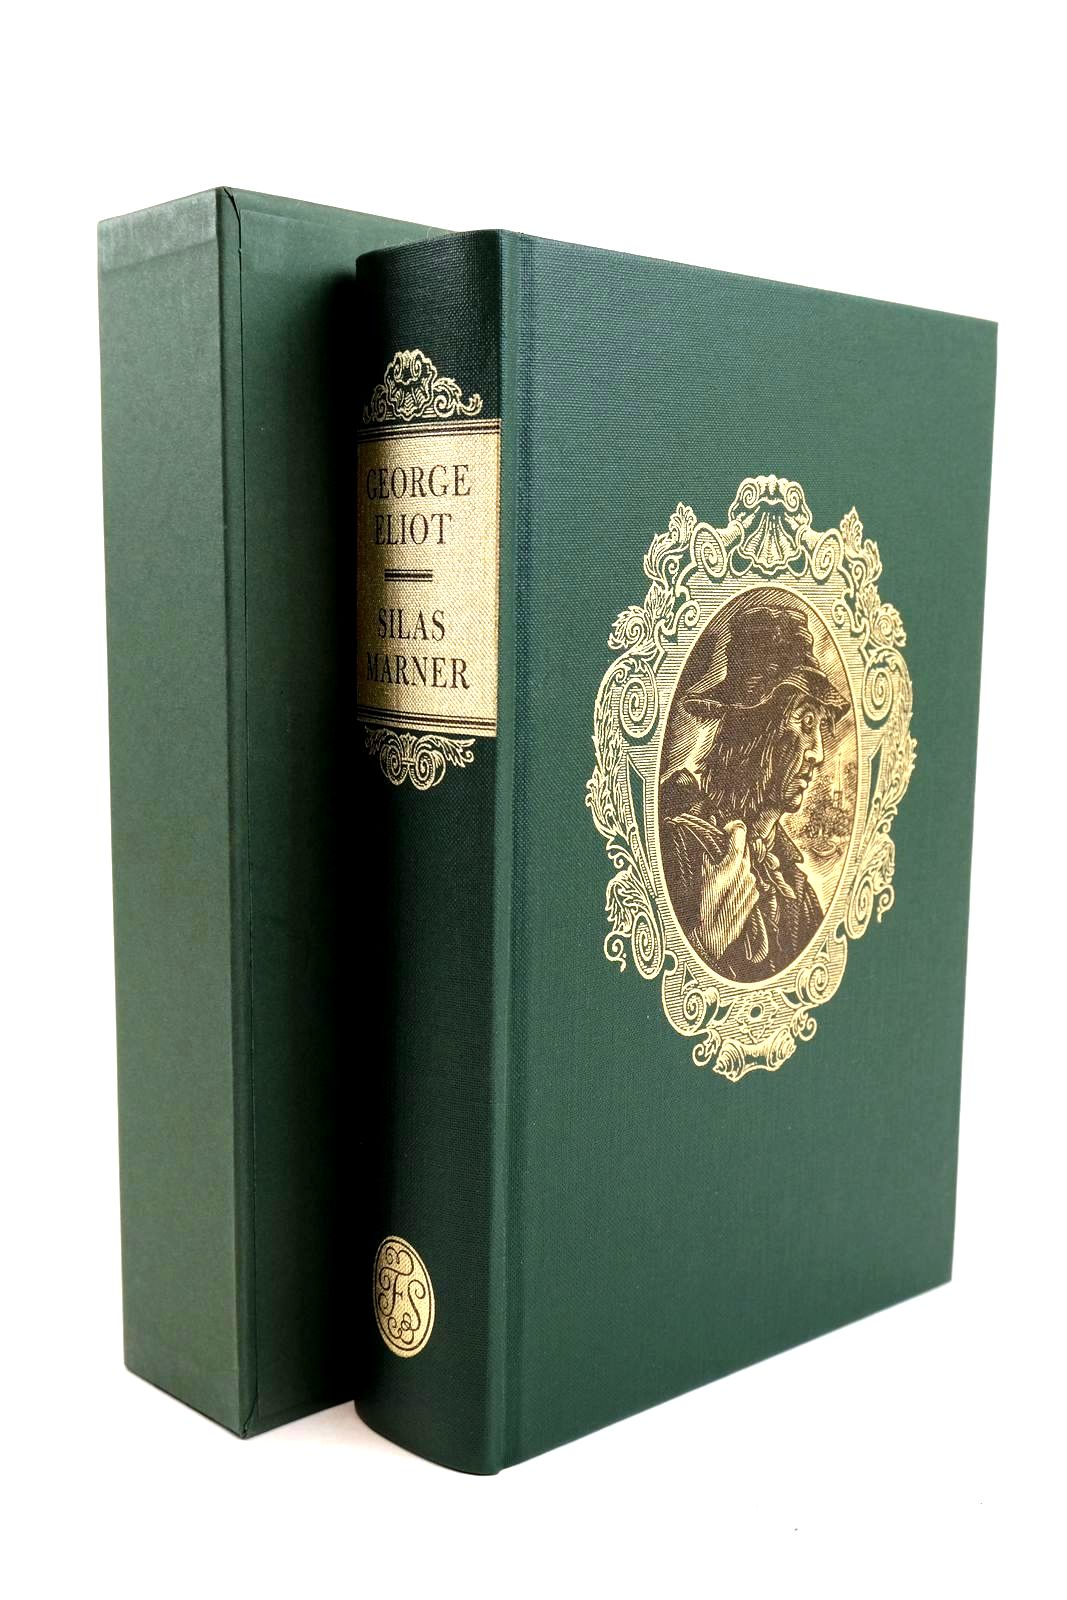 Photo of SILAS MARNER written by Eliot, George illustrated by Macgregor, Miriam published by Folio Society (STOCK CODE: 1320188)  for sale by Stella & Rose's Books